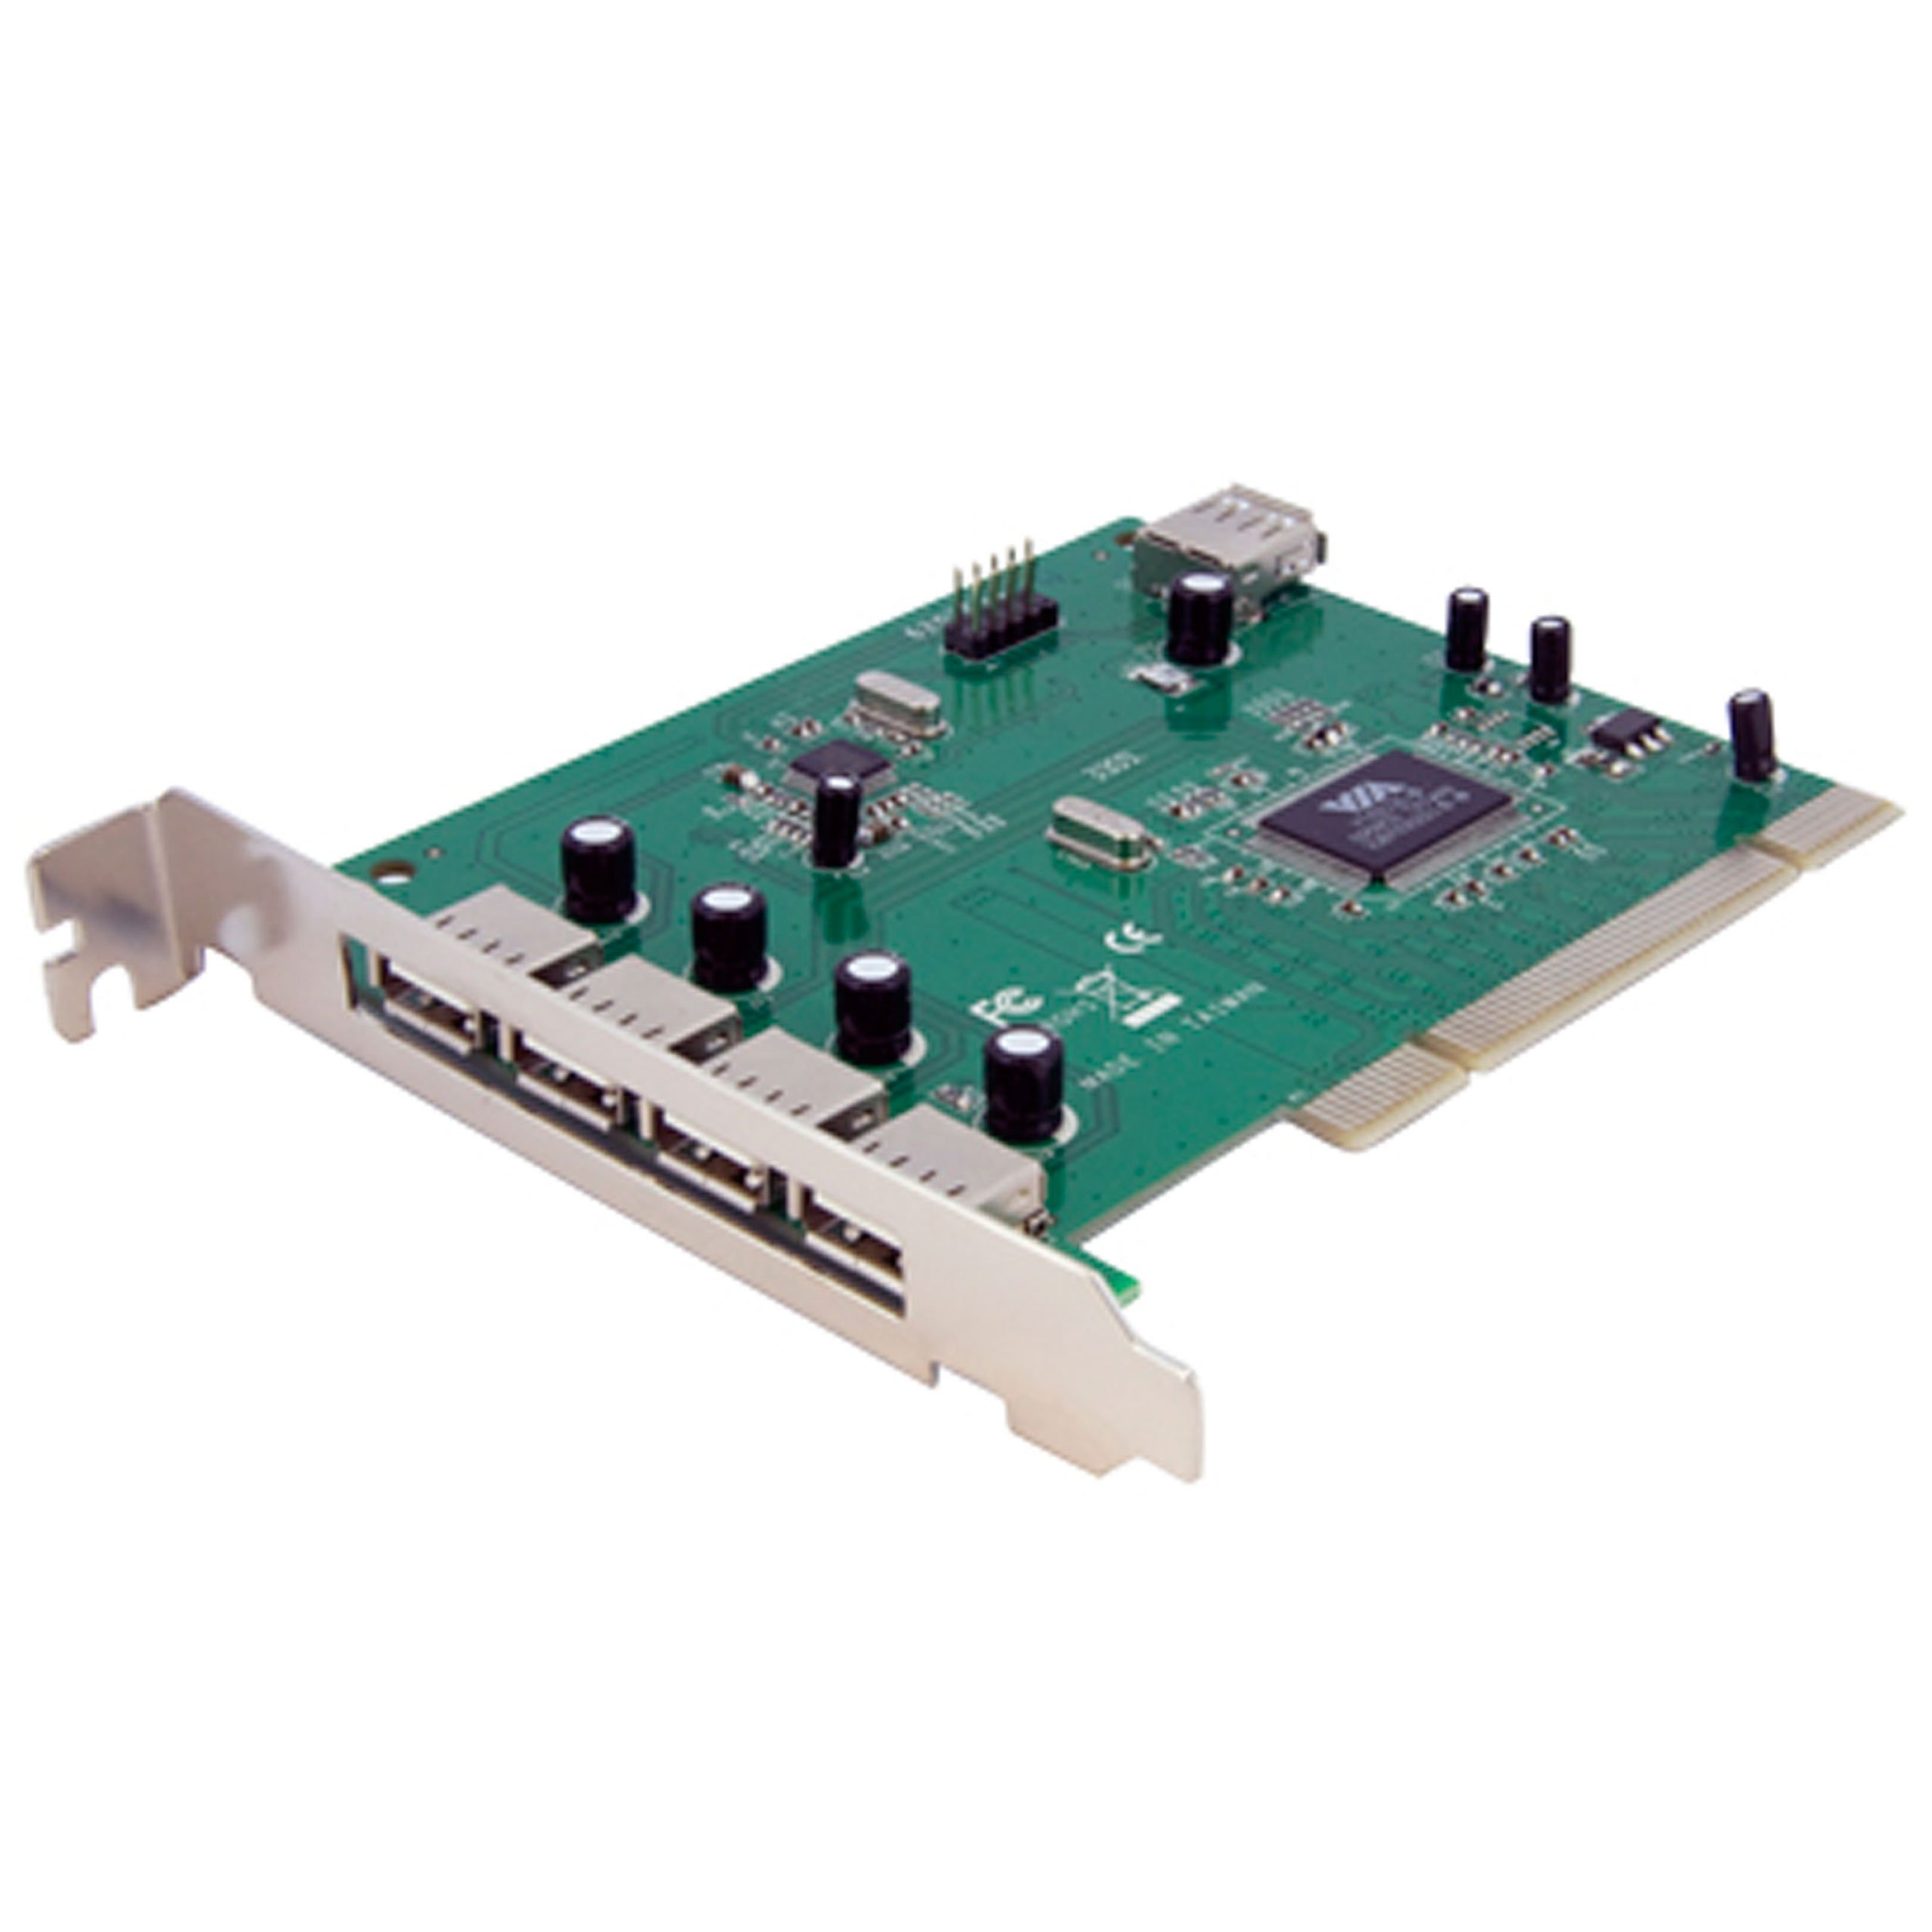 7 Port PCI USB Card Adapter - PCI to USB 2.0 Controller Adap